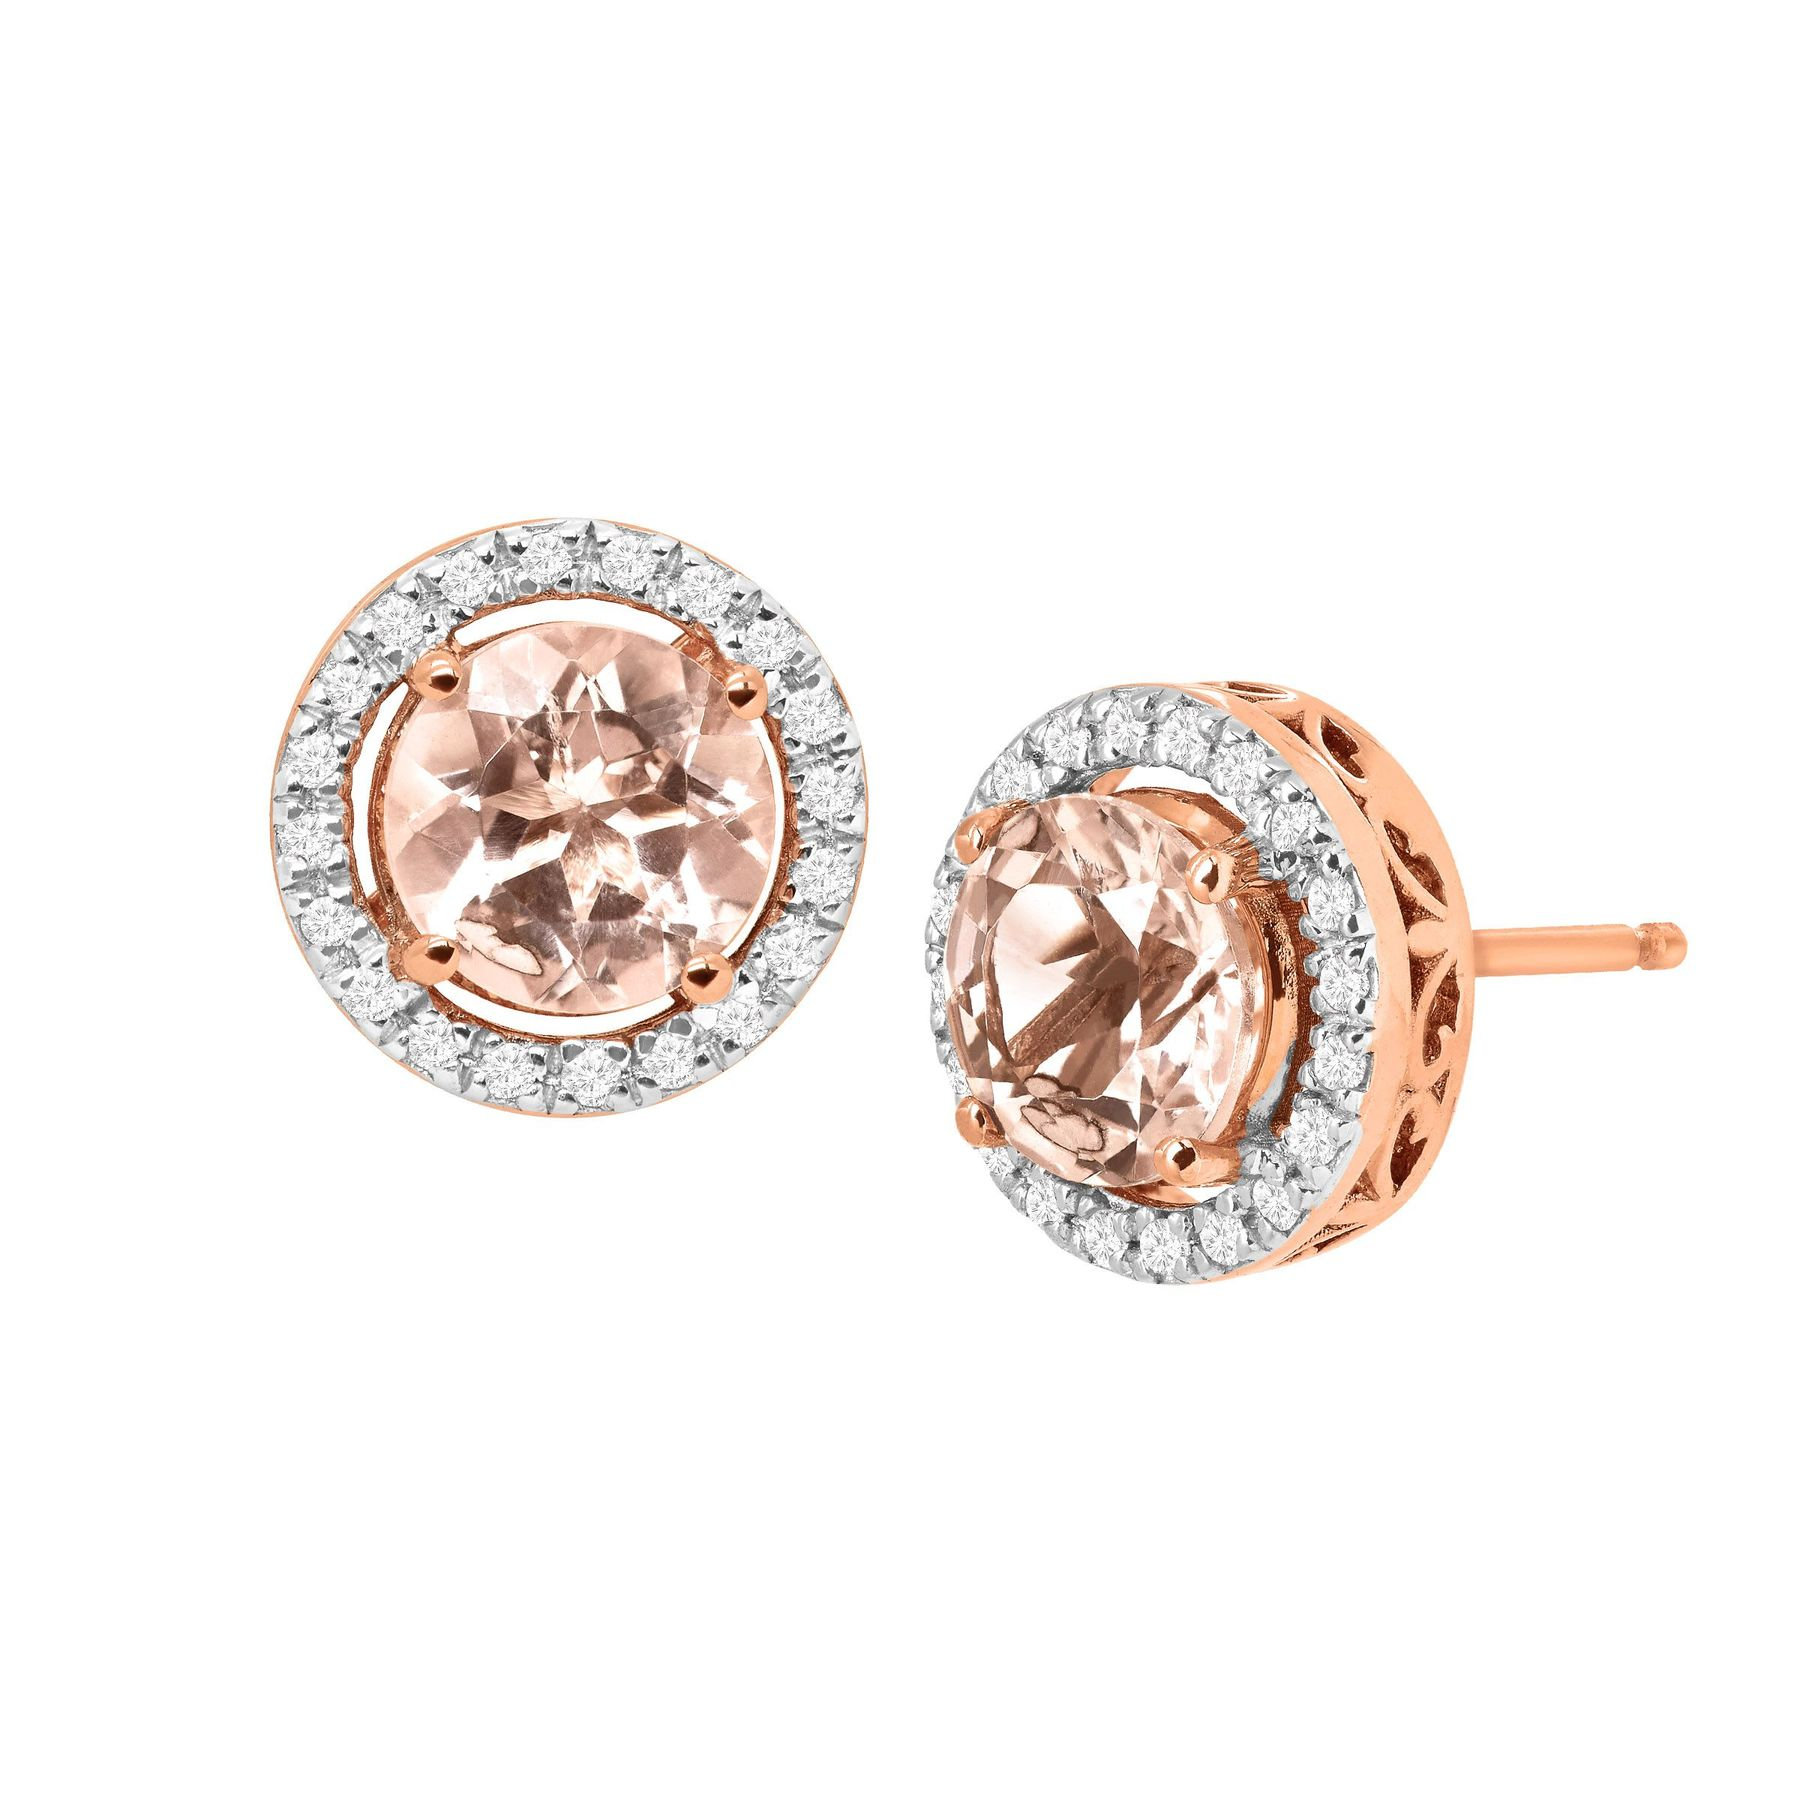 diamonds rg rosette earrings products peach tiny pmo stud ros gold morganite e rose cd champagne